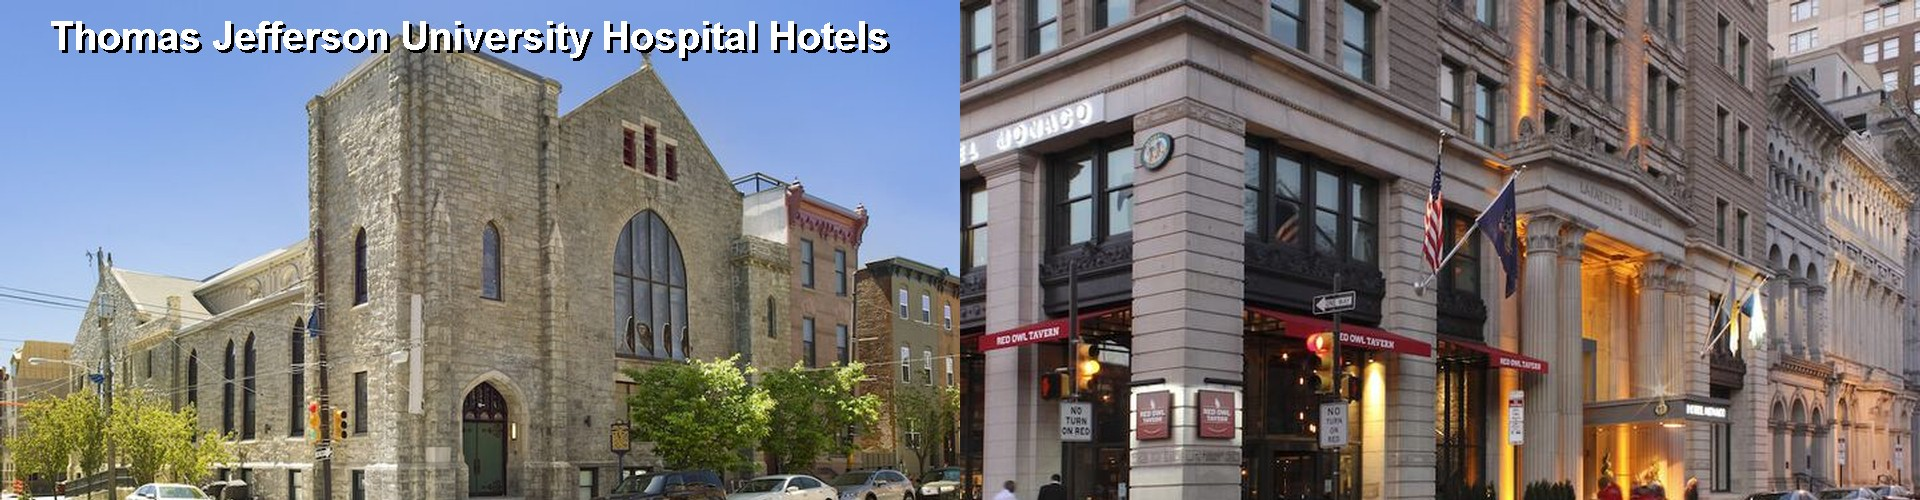 5 Best Hotels near Thomas Jefferson University Hospital